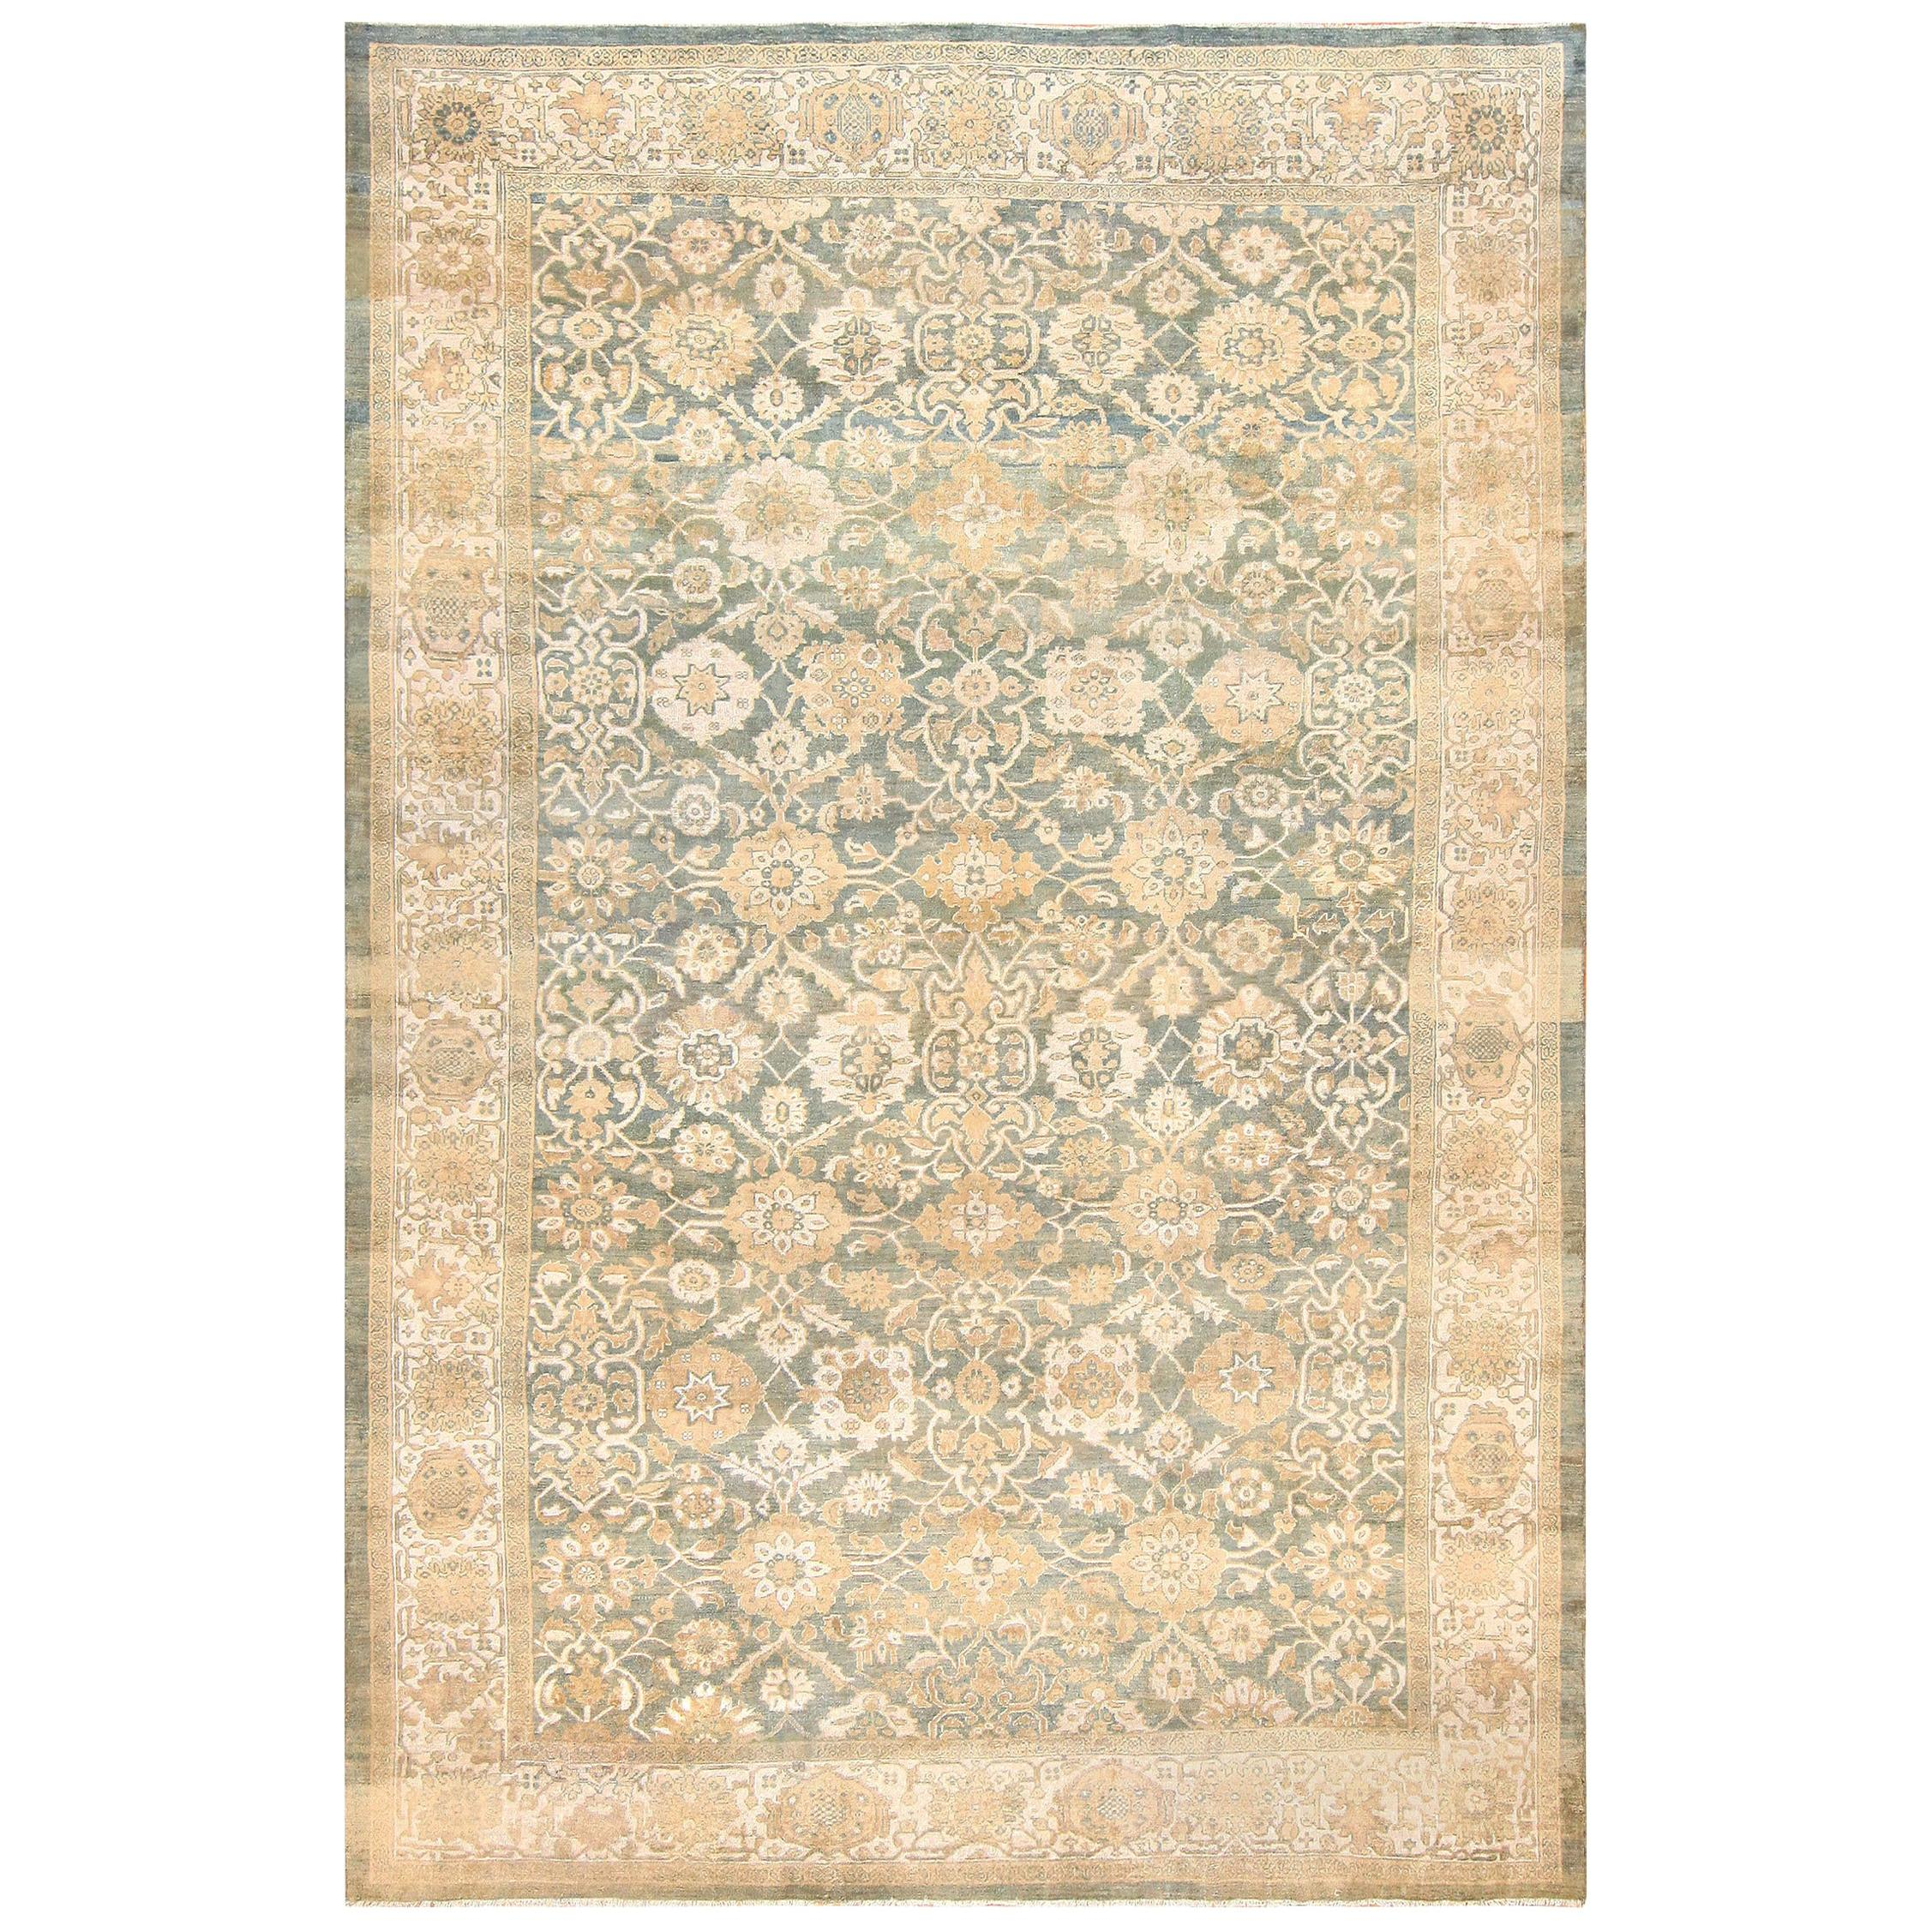 Blue Background Antique Persian Large Size Sultanabad Rug